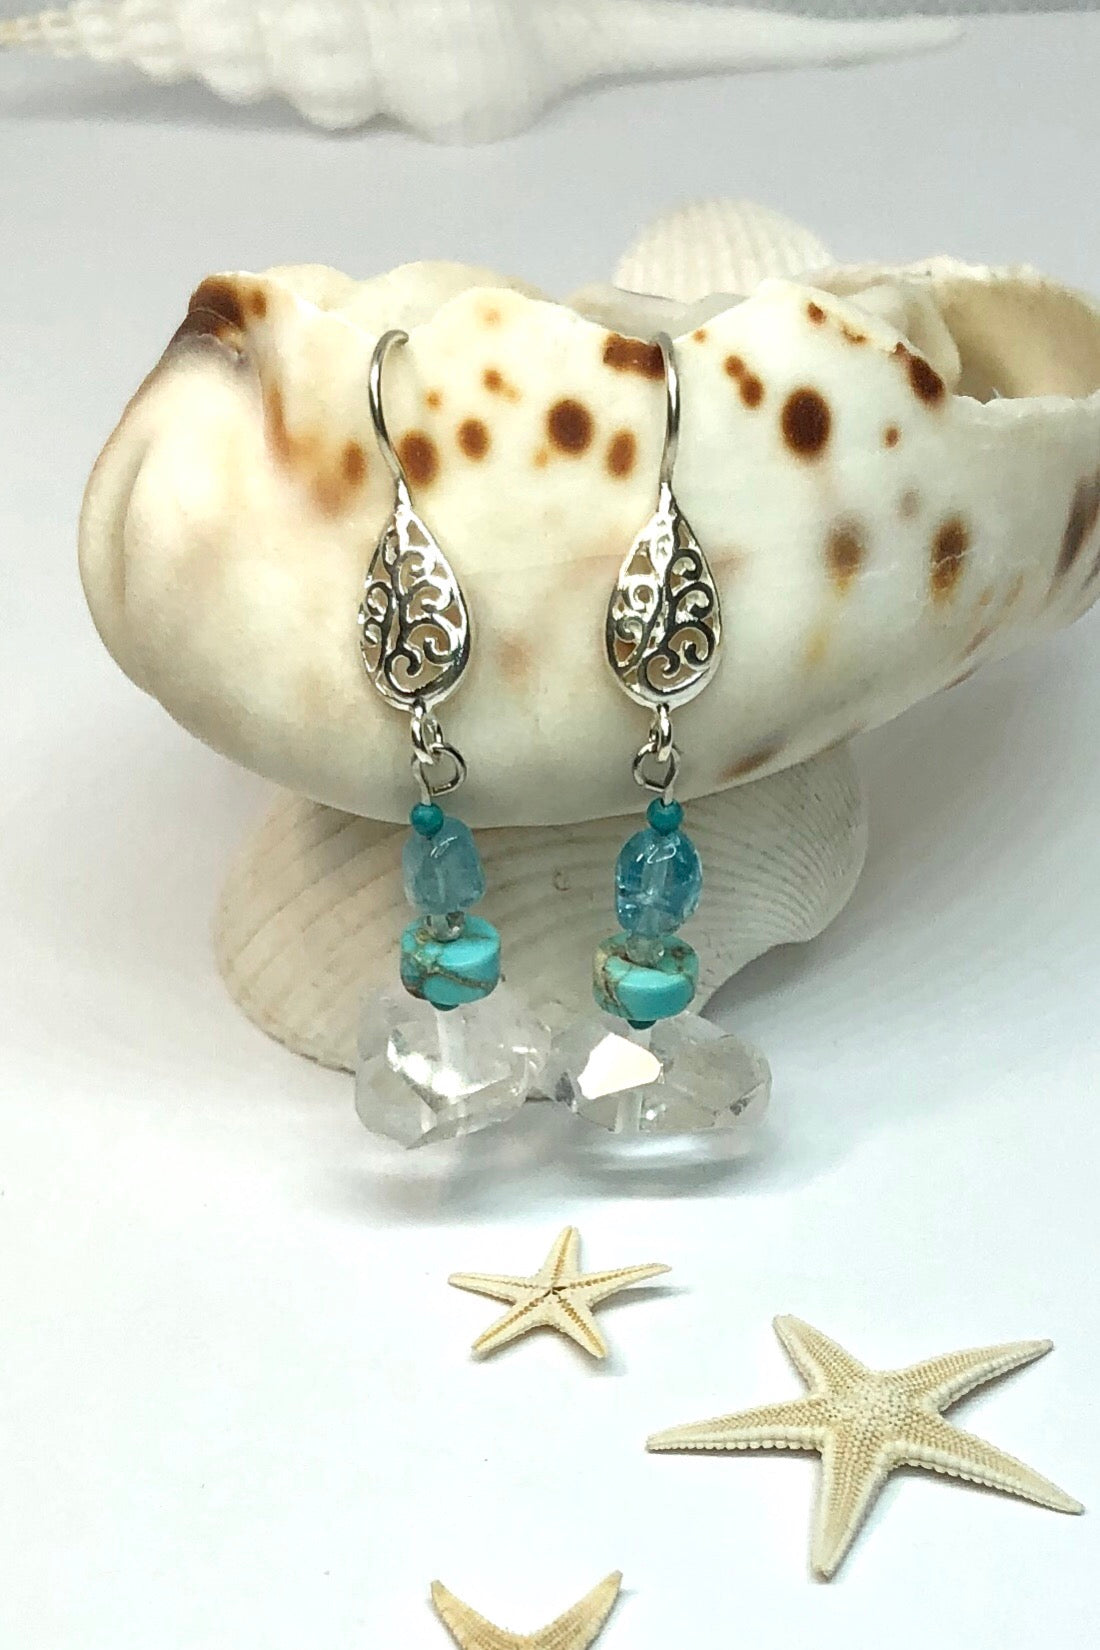 The Earrings Serendipity Crystal Fairy are handmade in Noosa, Australia featuring  rock crystal bead, turquoise howlite bead, blue quartz bead and 925 Silver fancy hook.